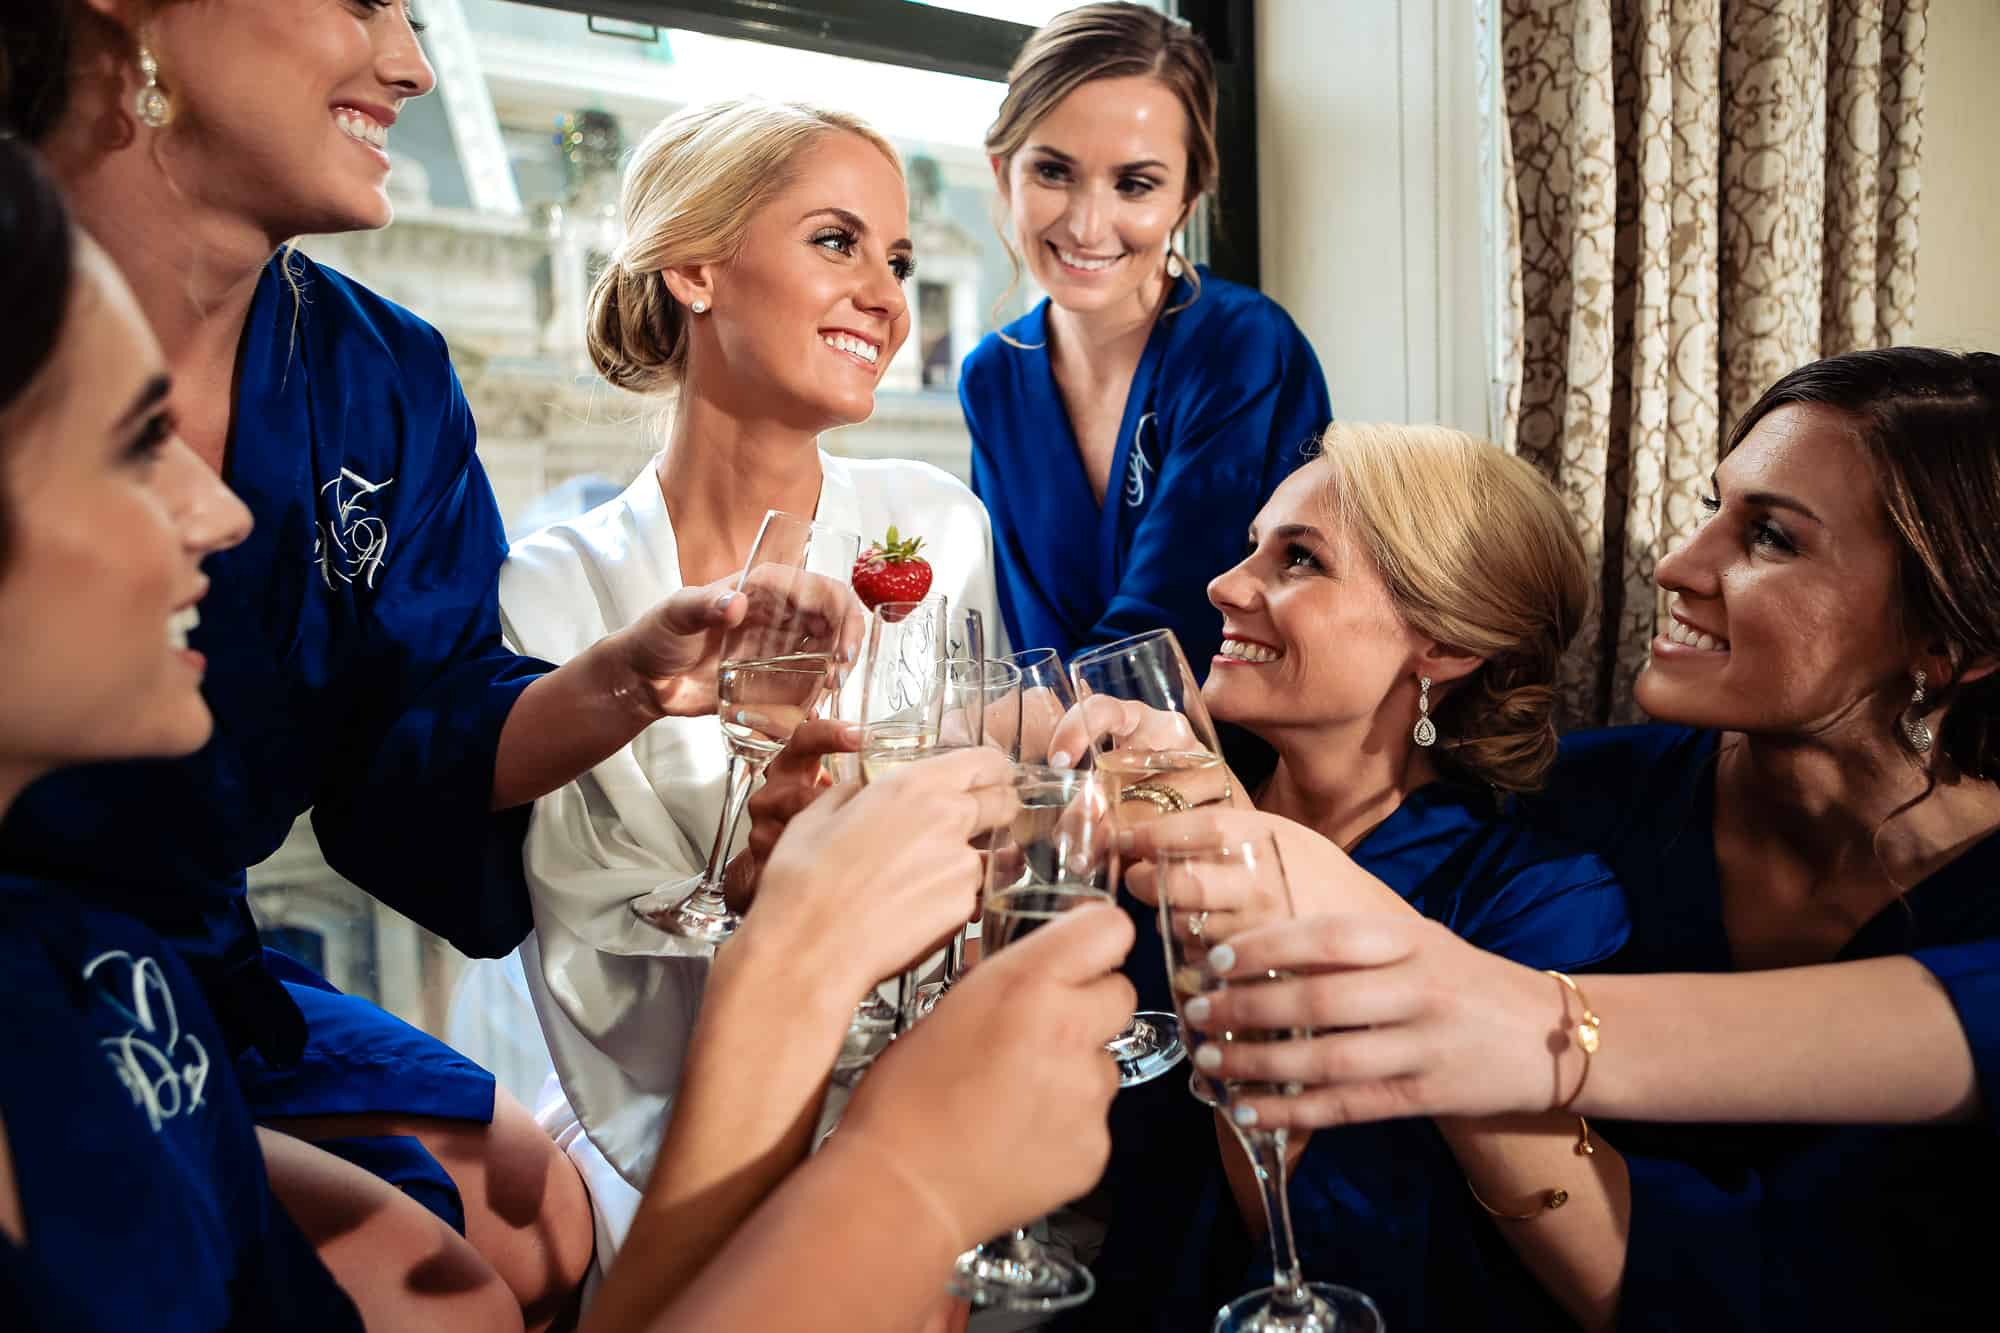 Ritz Carlton Philadelphia Wedding|bride and bridesmaids toasting with champagne glasses